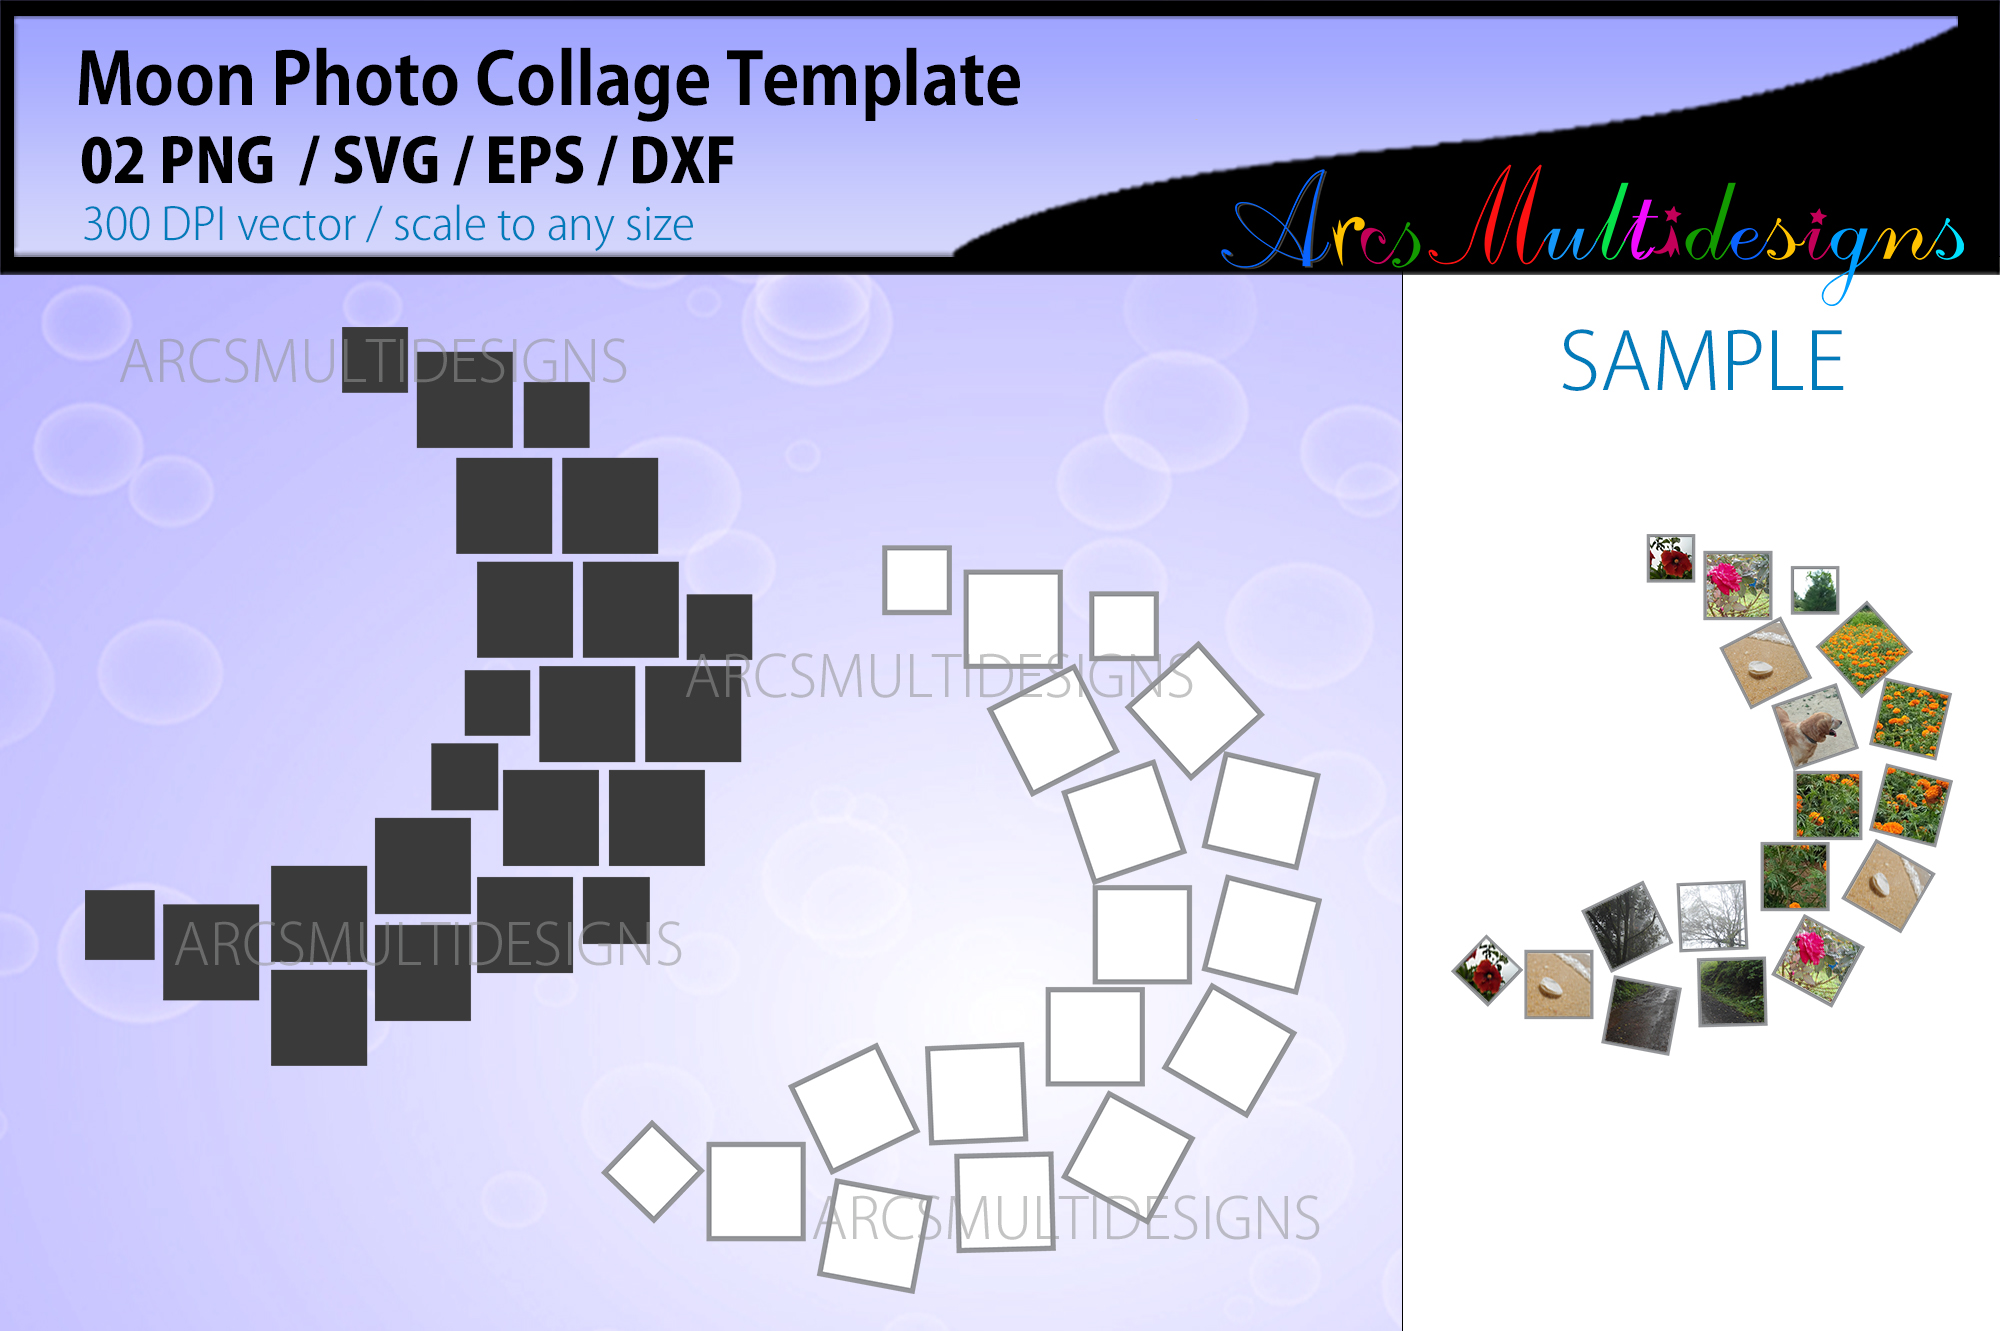 Moon Photo Collage Template SVG File